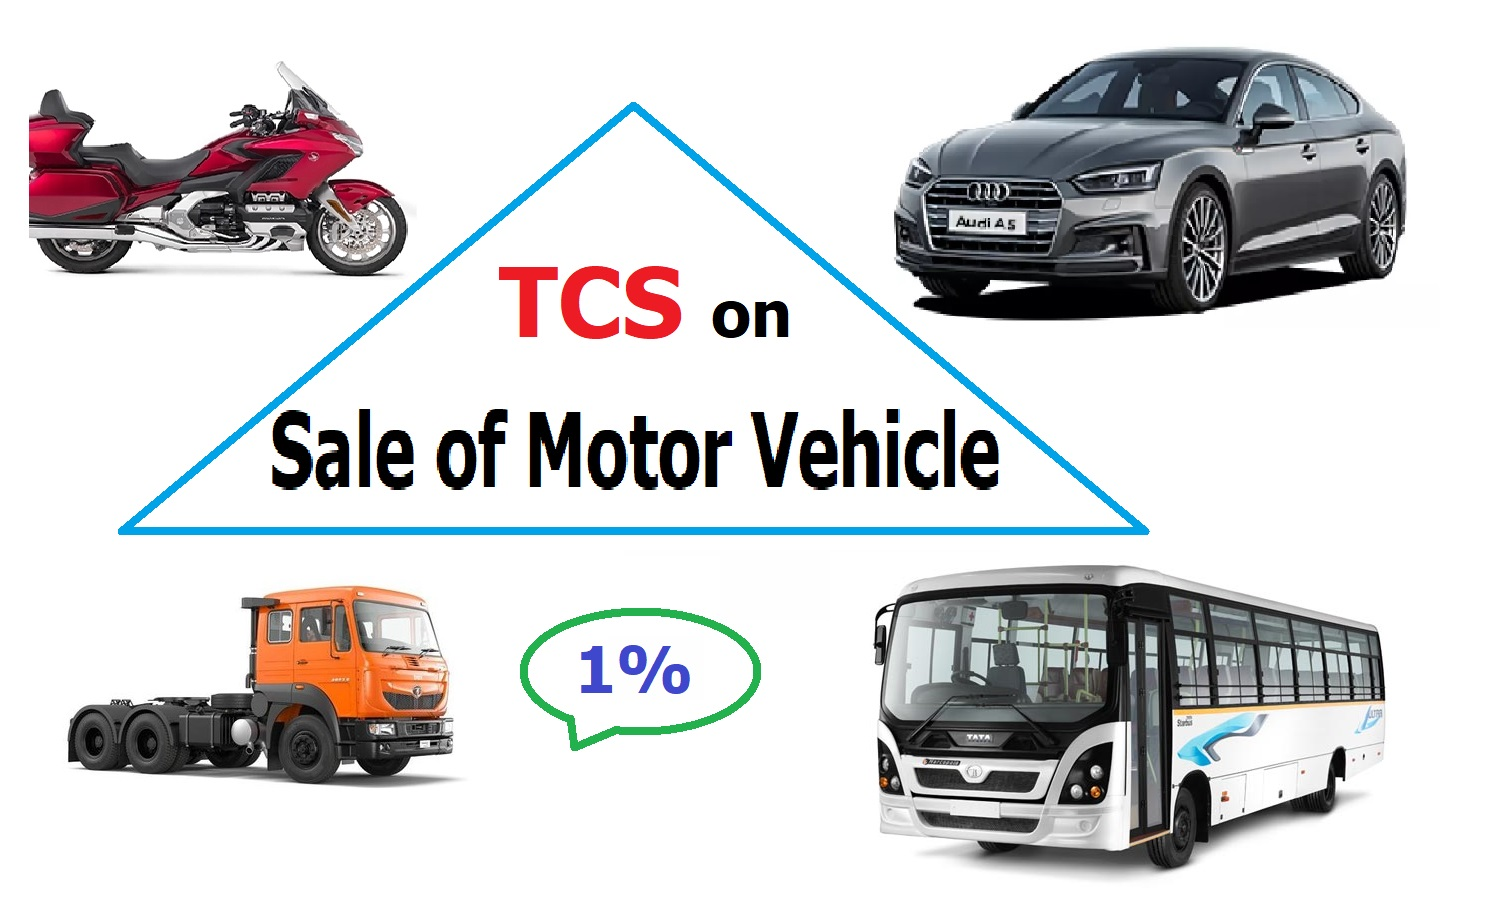 TCS on sale of motor vehicle